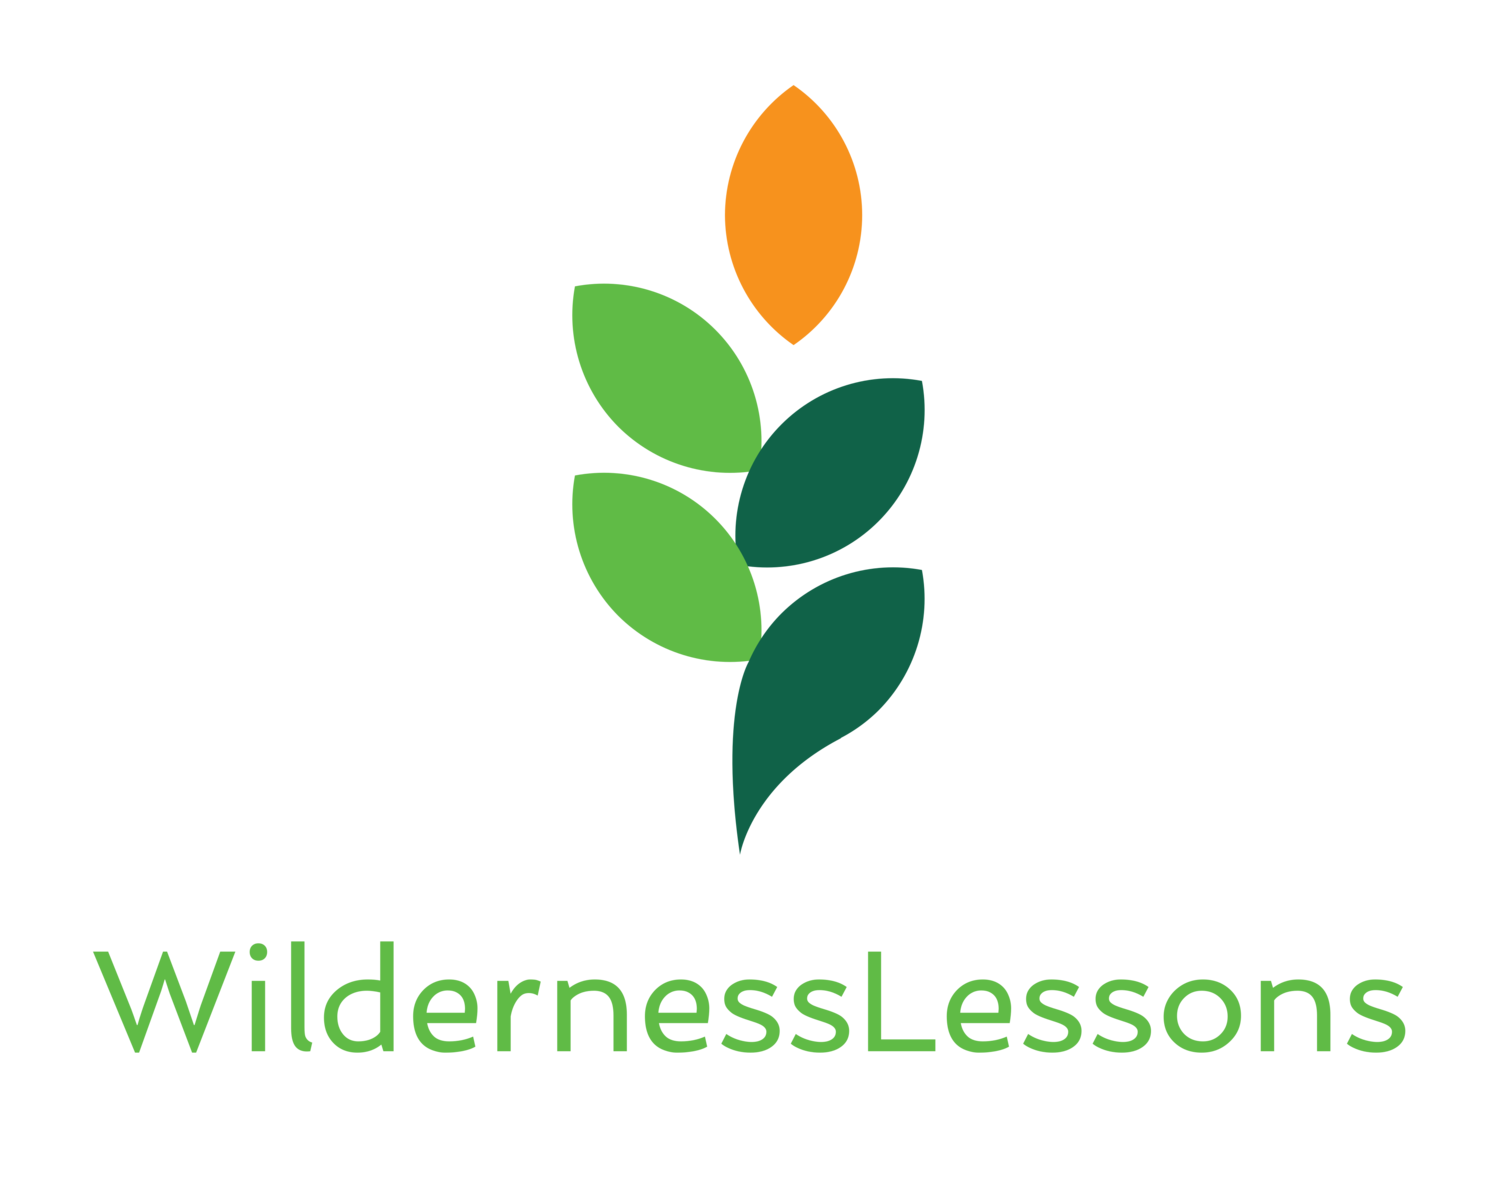 WildernessLessons